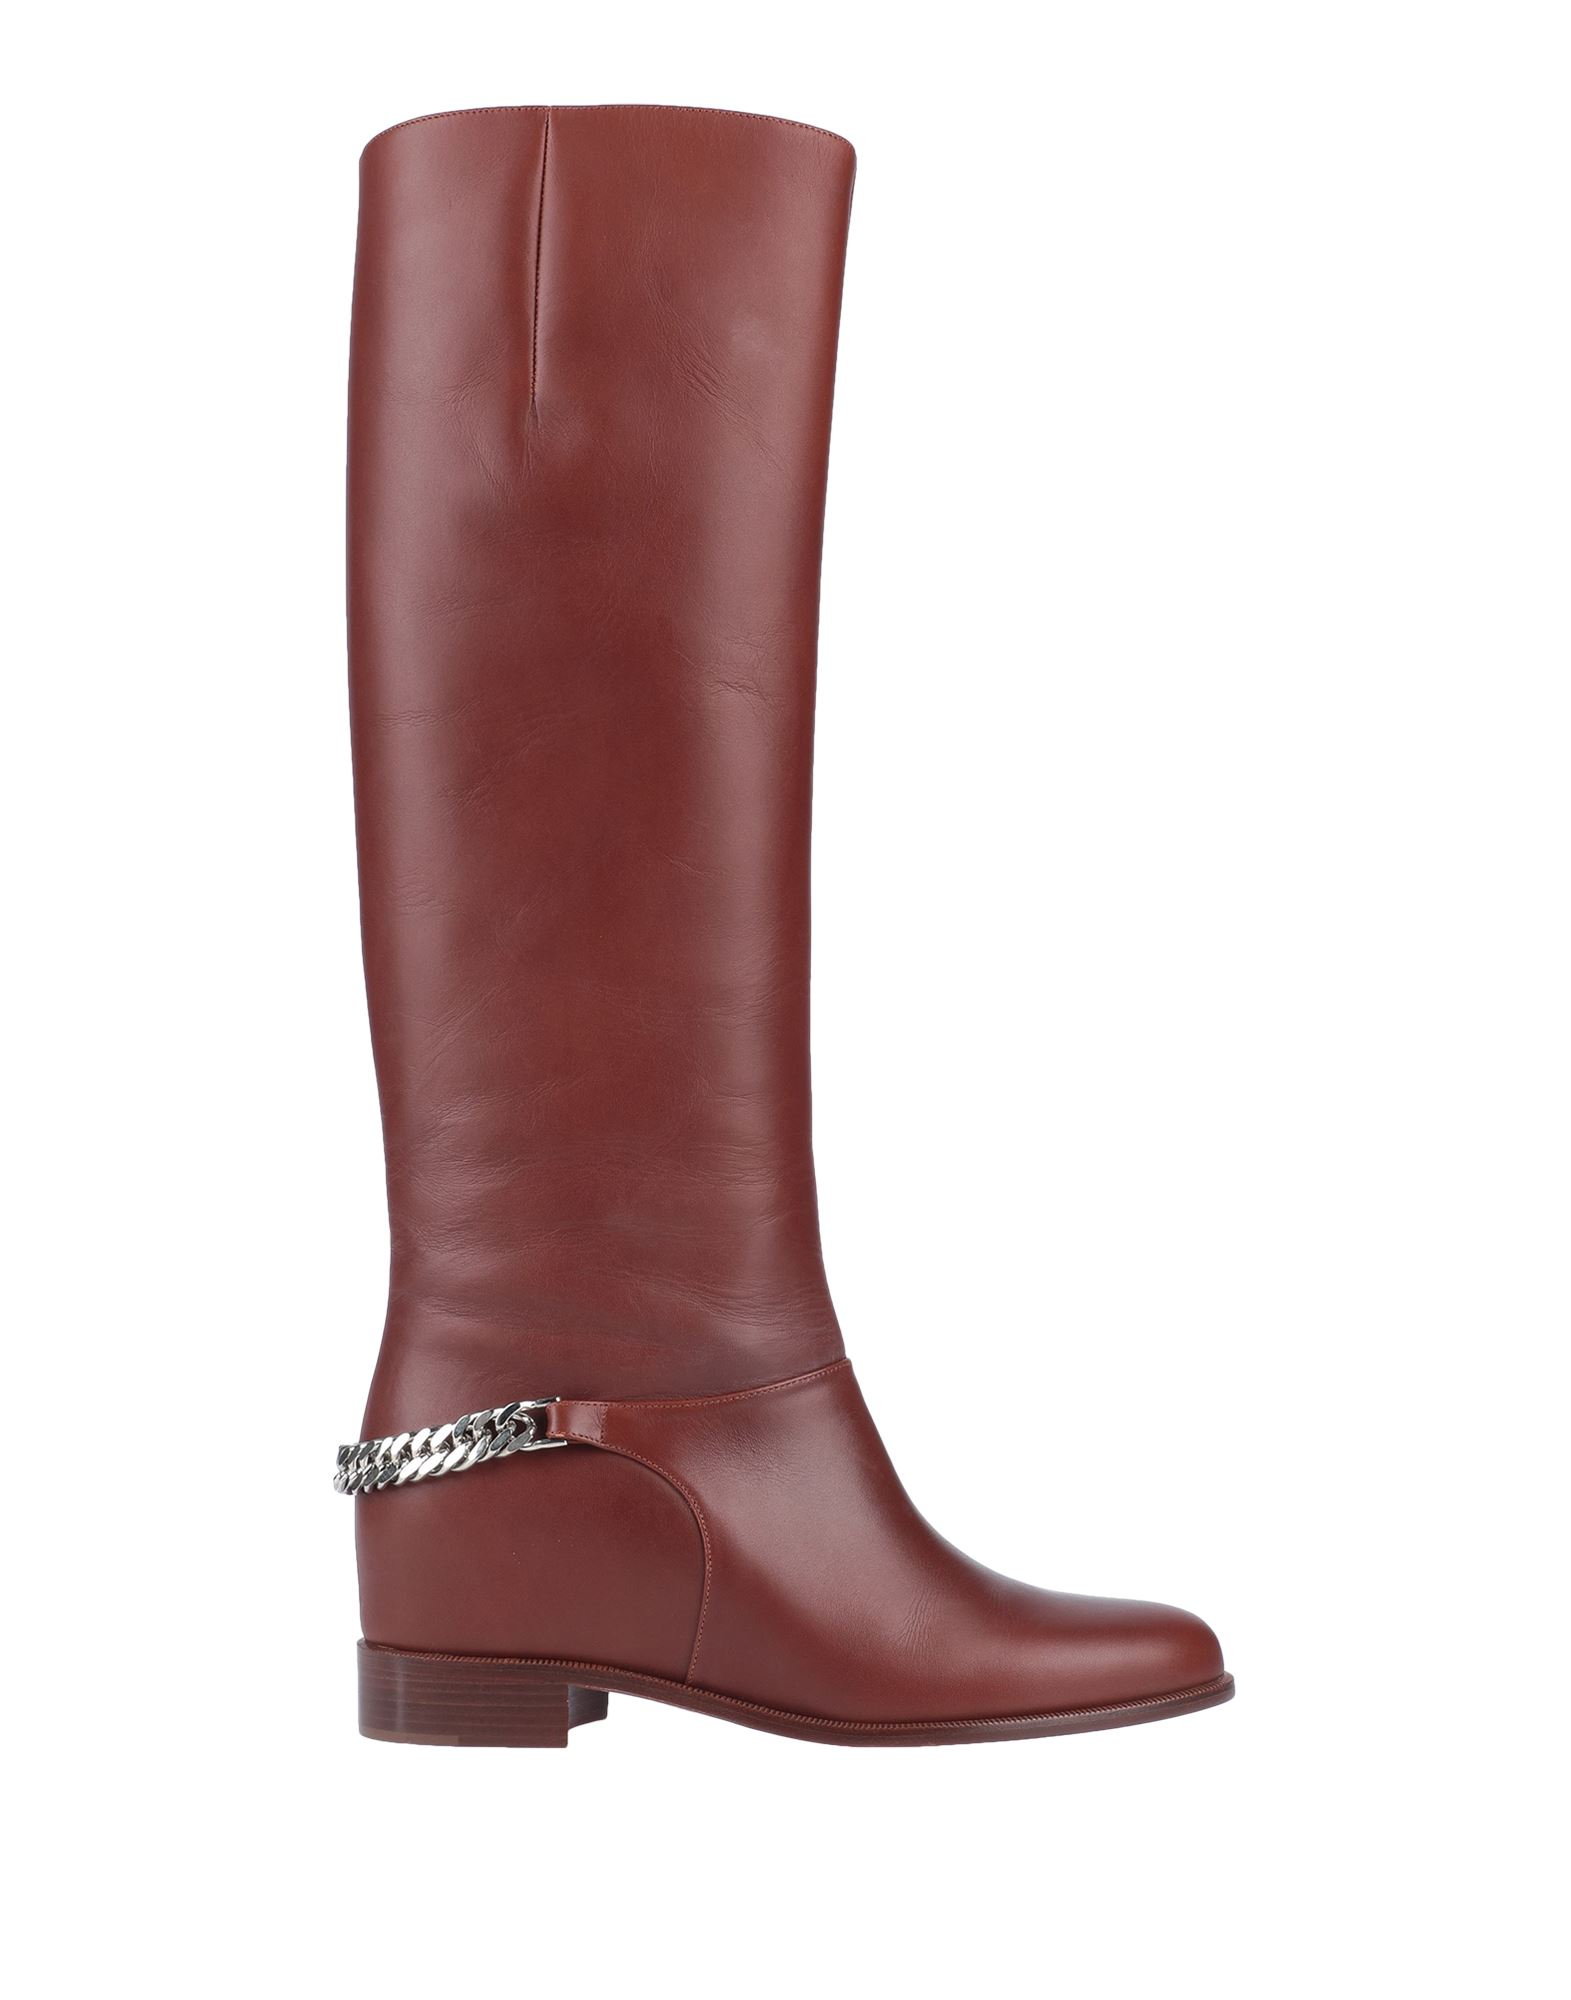 CHRISTIAN LOUBOUTIN Boots. metal applications, round toeline, leather sole, solid color, flat, small sized. Soft Leather